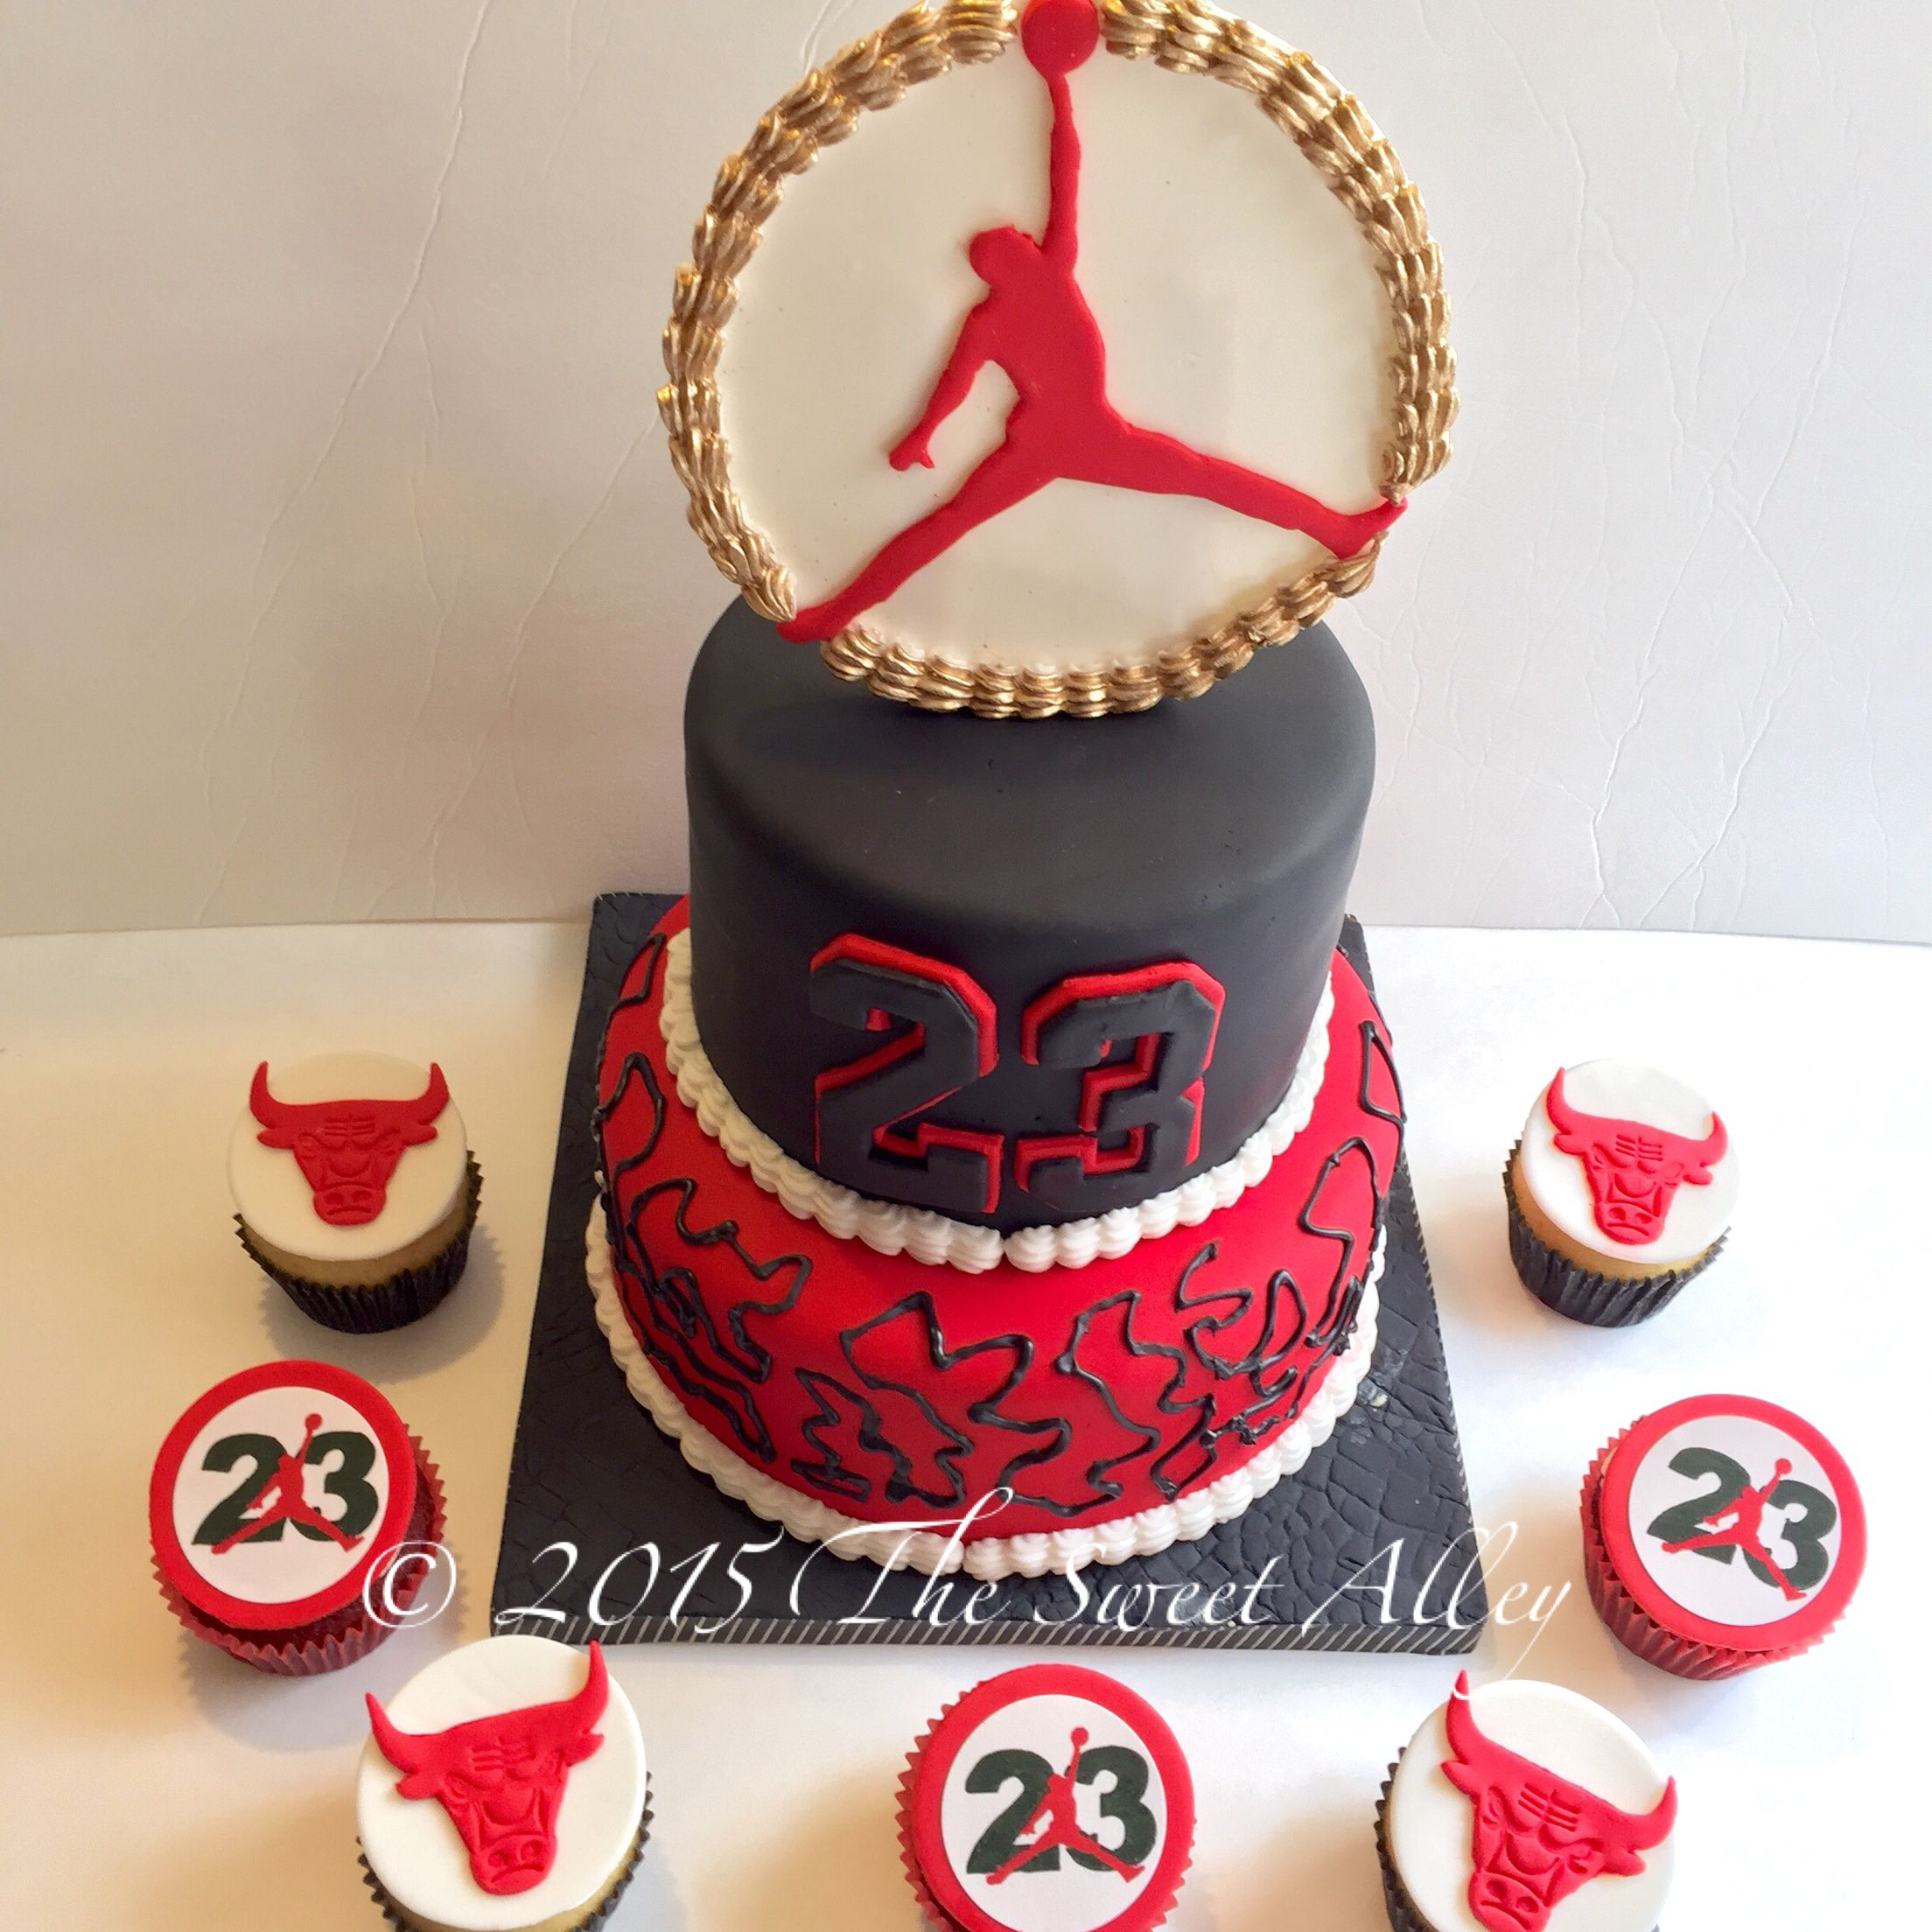 Baby Shower Cake Decorations At Michaels : Michael Jordan / Chicago Bulls cake and cupcakes by The ...